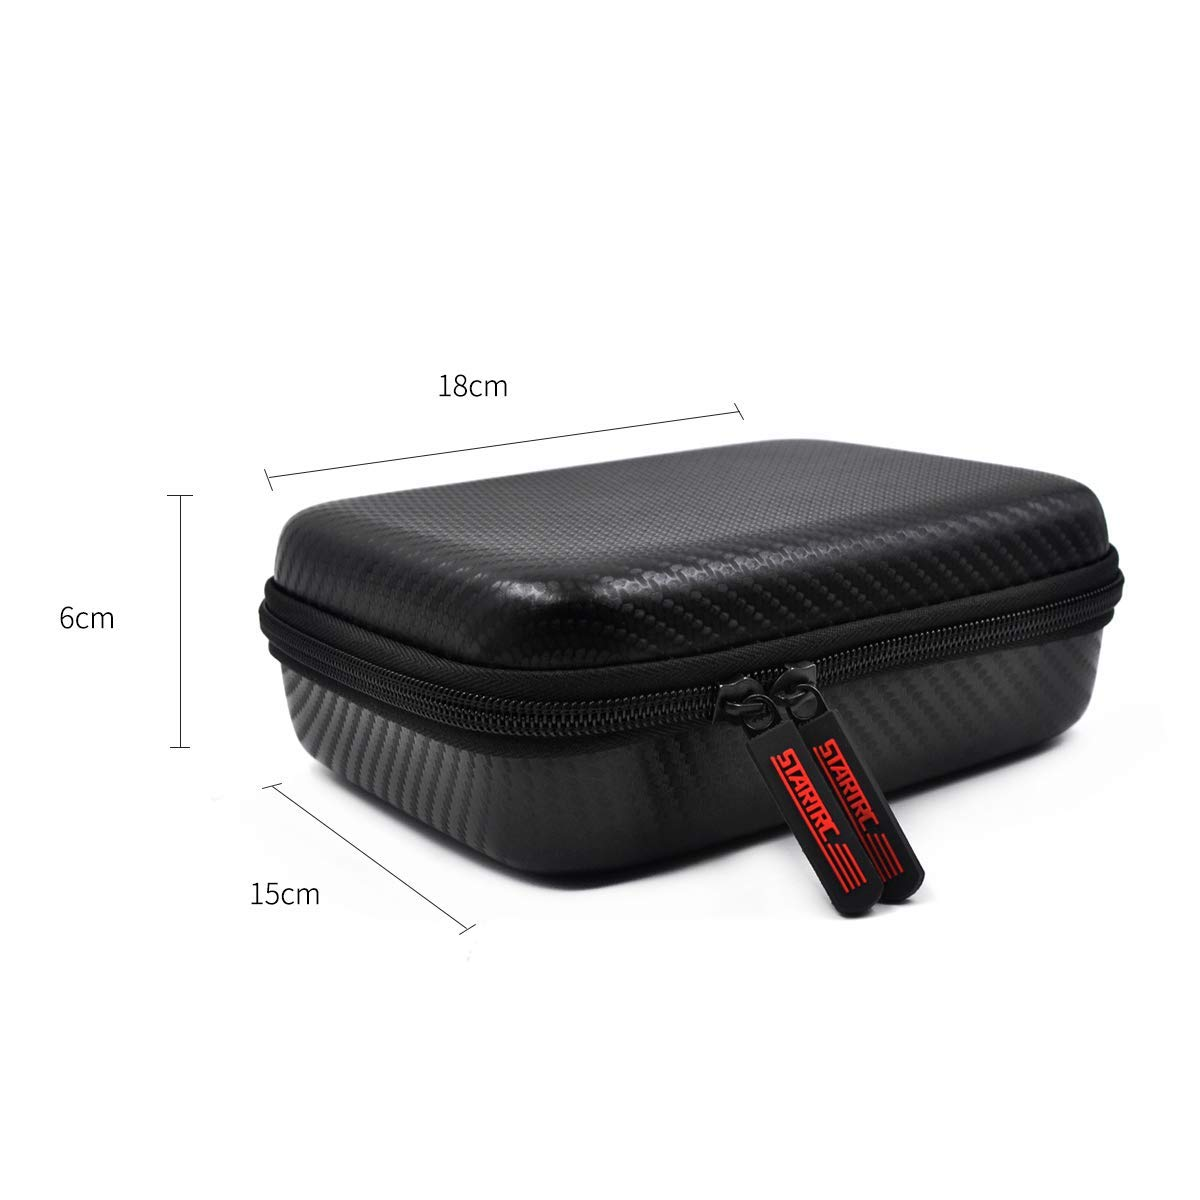 Taoric Case Protective Case Portable Storage Box for DJI Osmo Mobile Waterproof Dustproof